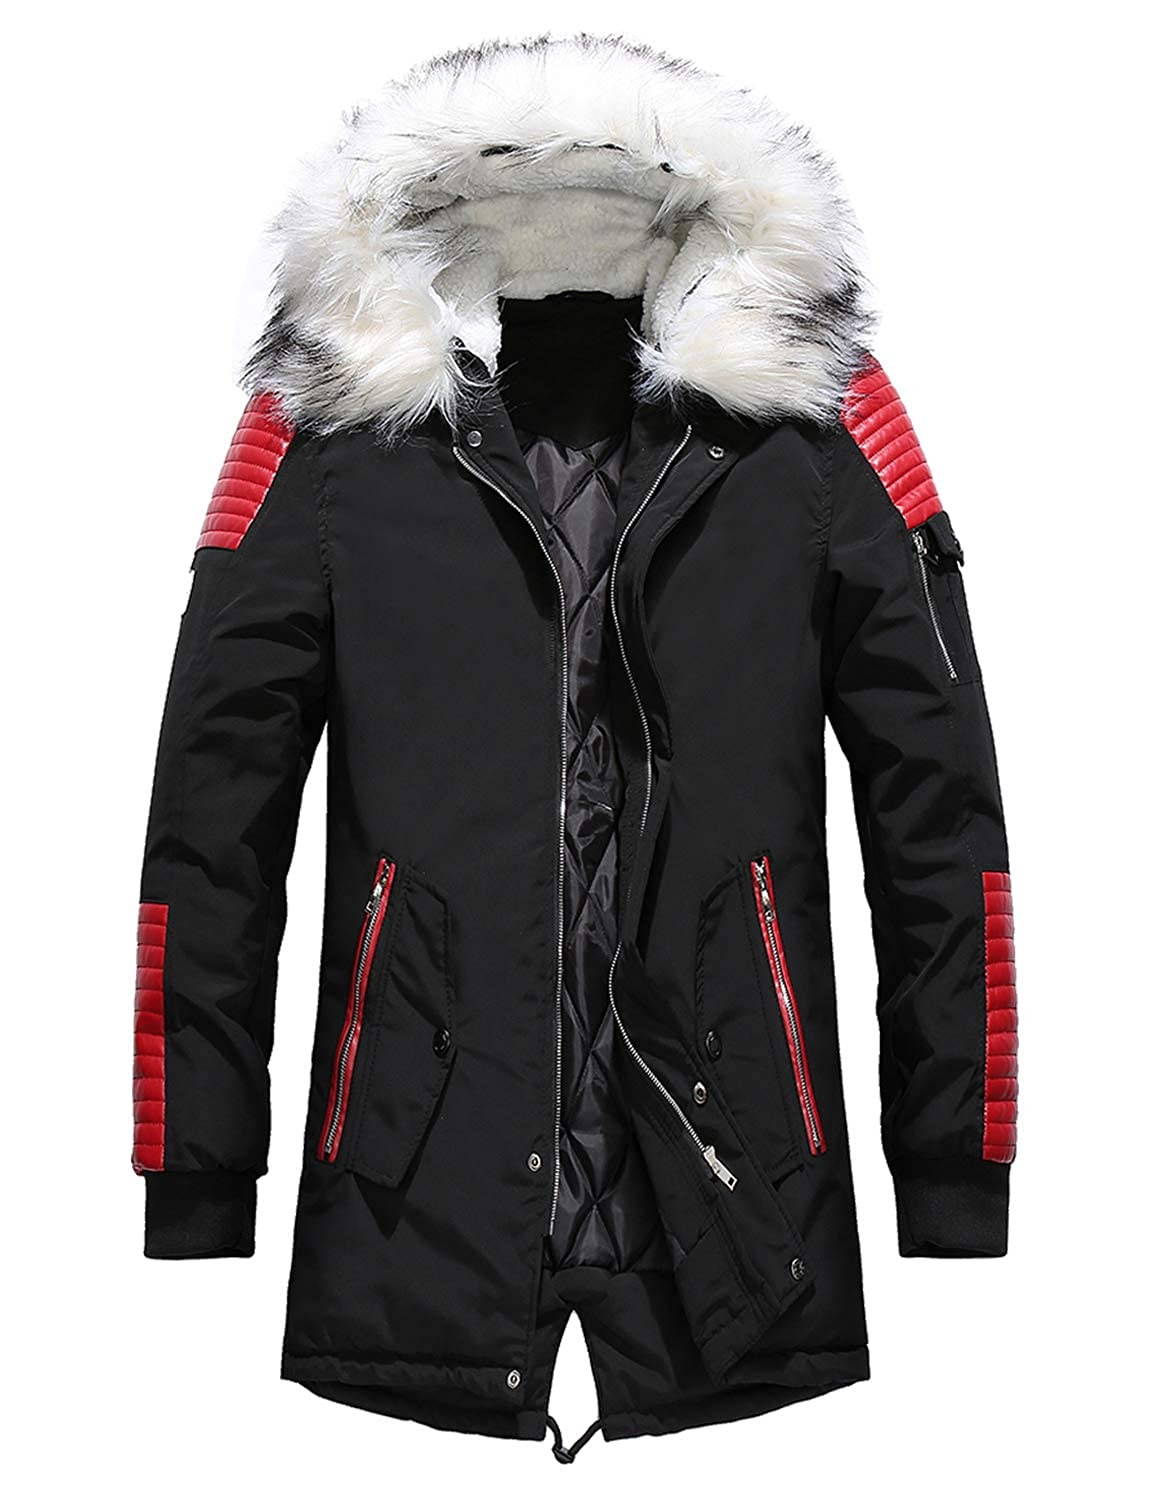 BELLOO Men's Winter Parka Coat Padded Windbreaker Jacket with Faux Fur Hood PU Leather Patch